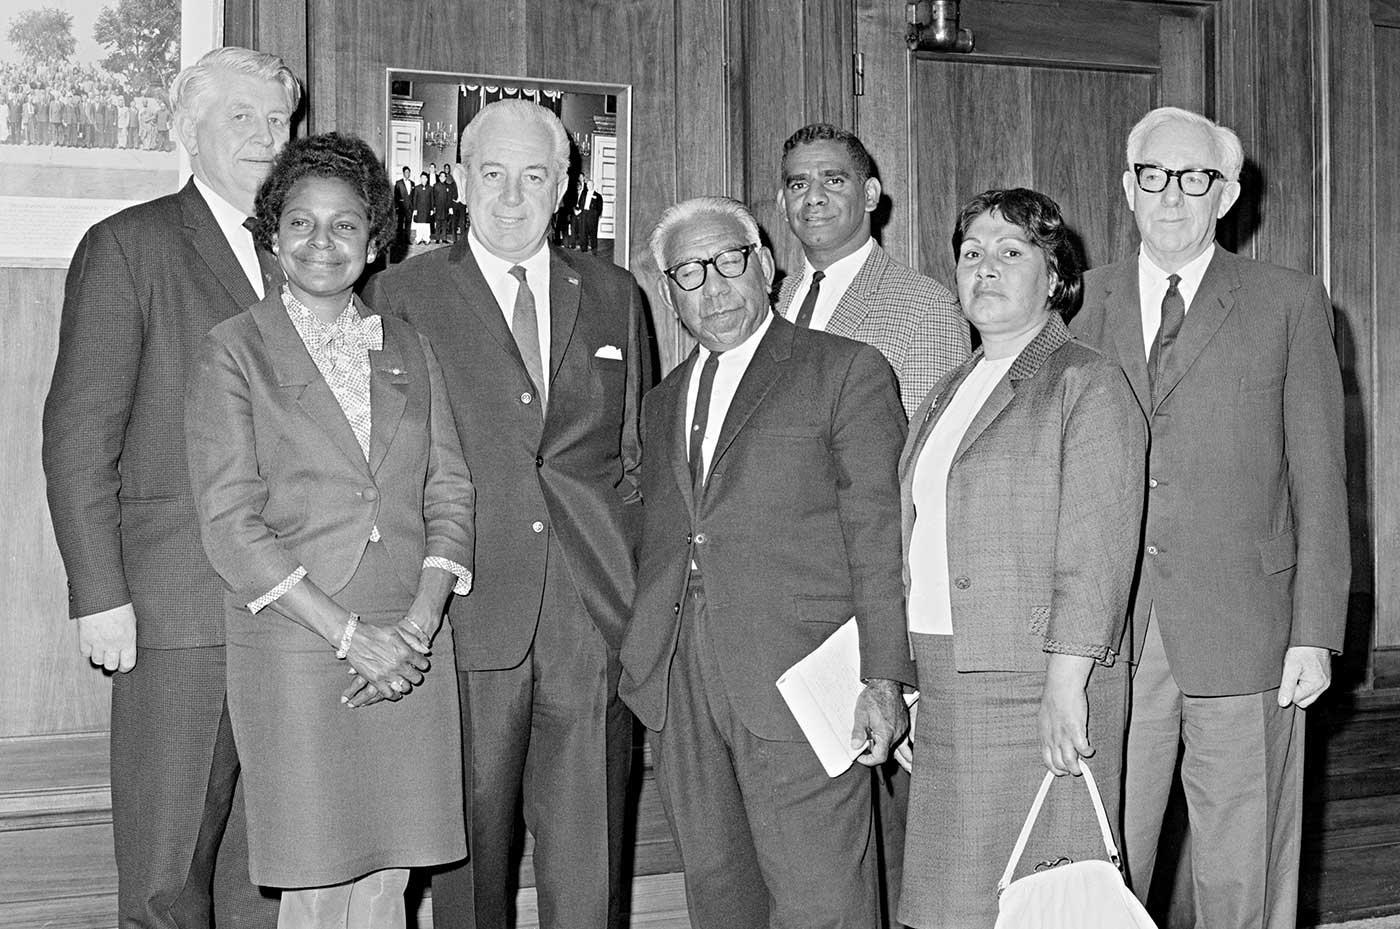 Black and white photo of Gordon Bryant MHR, Faith Bandler, Prime Minister Harold Holt, Pastor Doug Nicholls, Harry Penrith, Winnie Branson and William Wentworth, MHR.